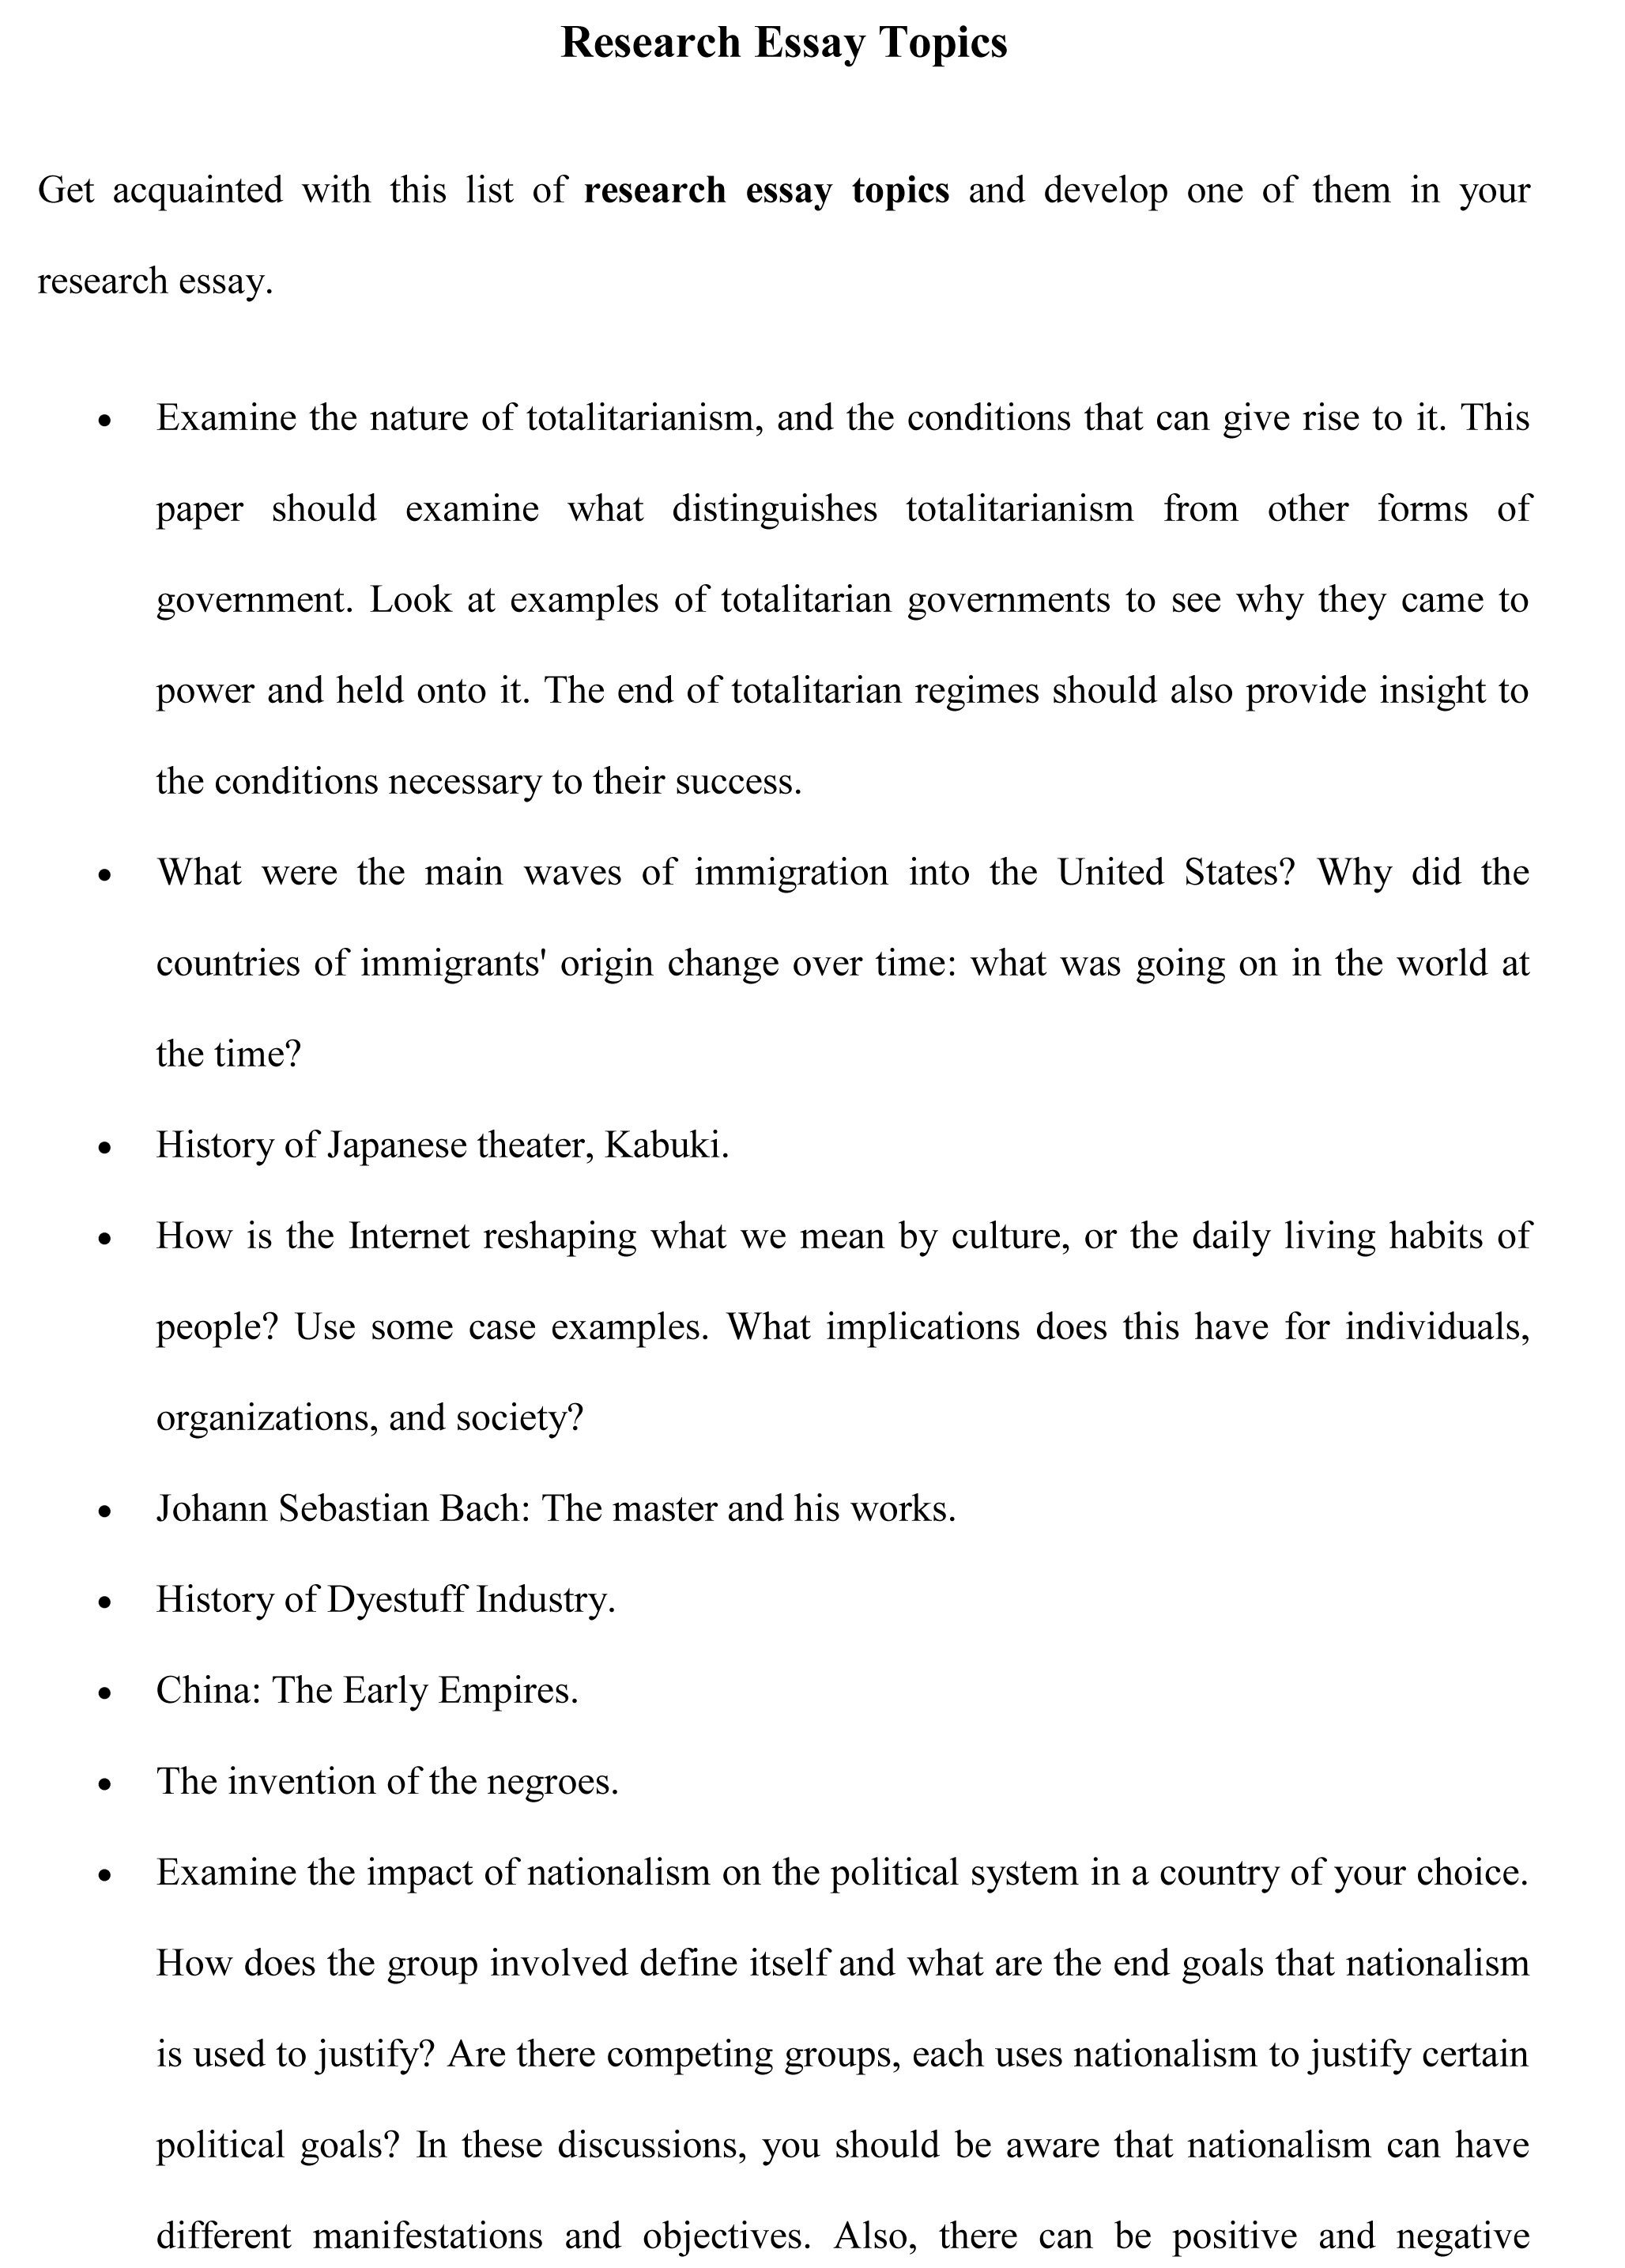 025 Research Essay Topics Sample For Narrative Imposing A Essays College Students 3 Full